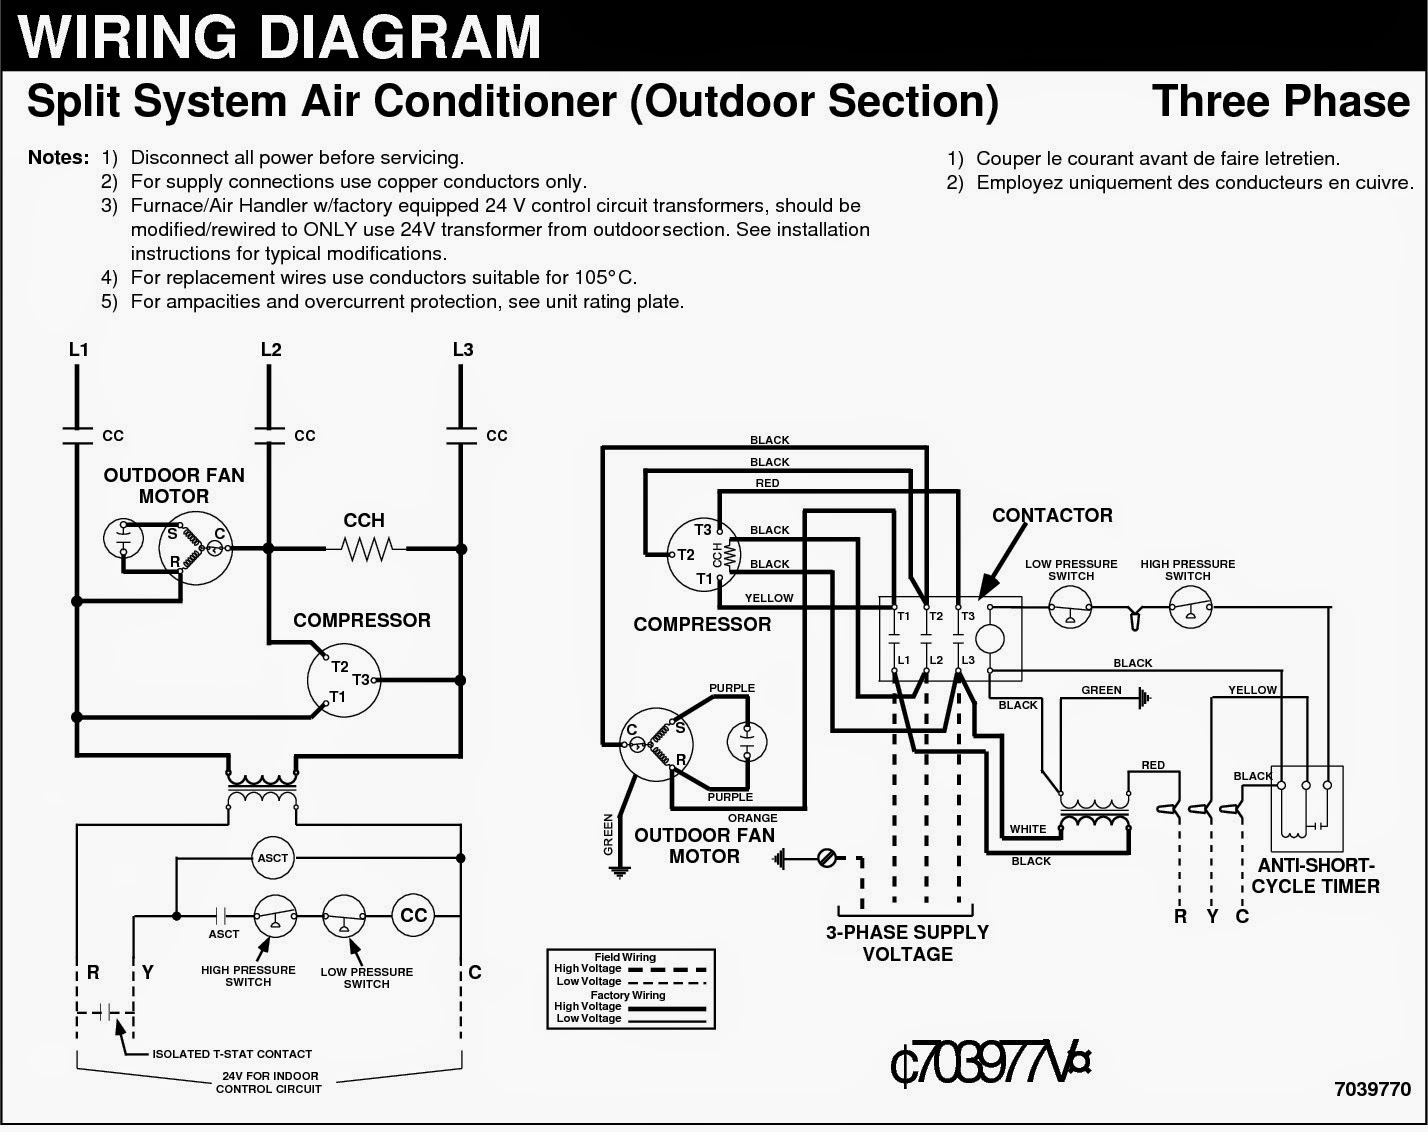 Electrical Wiring Diagrams For Air Conditioning Systems Part Two Lg Room Conditioner Diagram Fig13 Split Cooling Units Three Phase